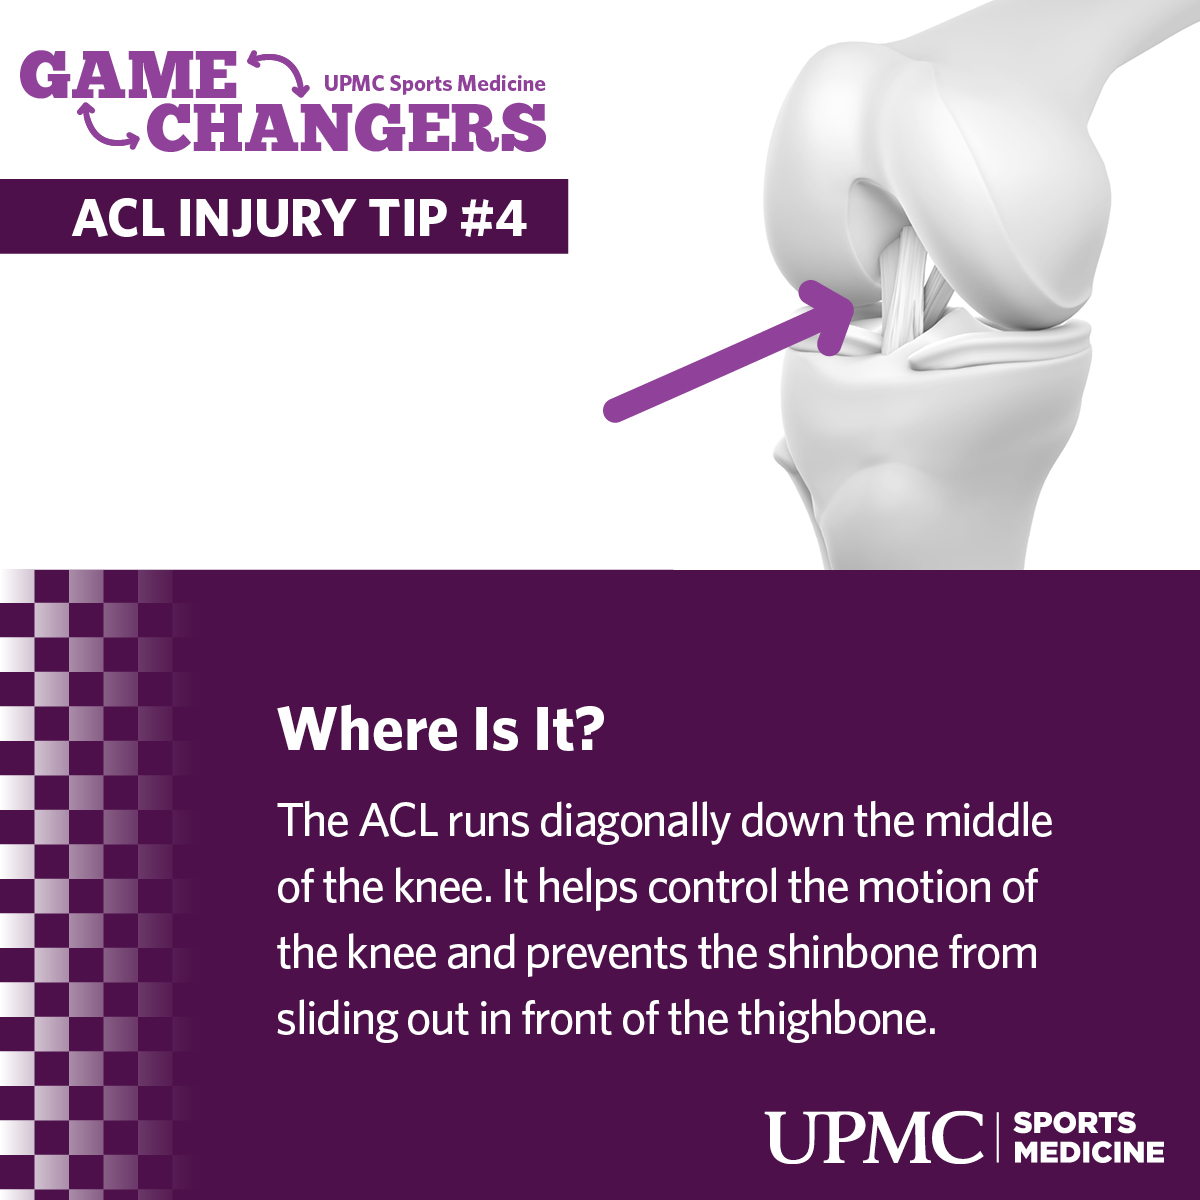 UPMC_GameChangers_ACL_FB4_FINAL